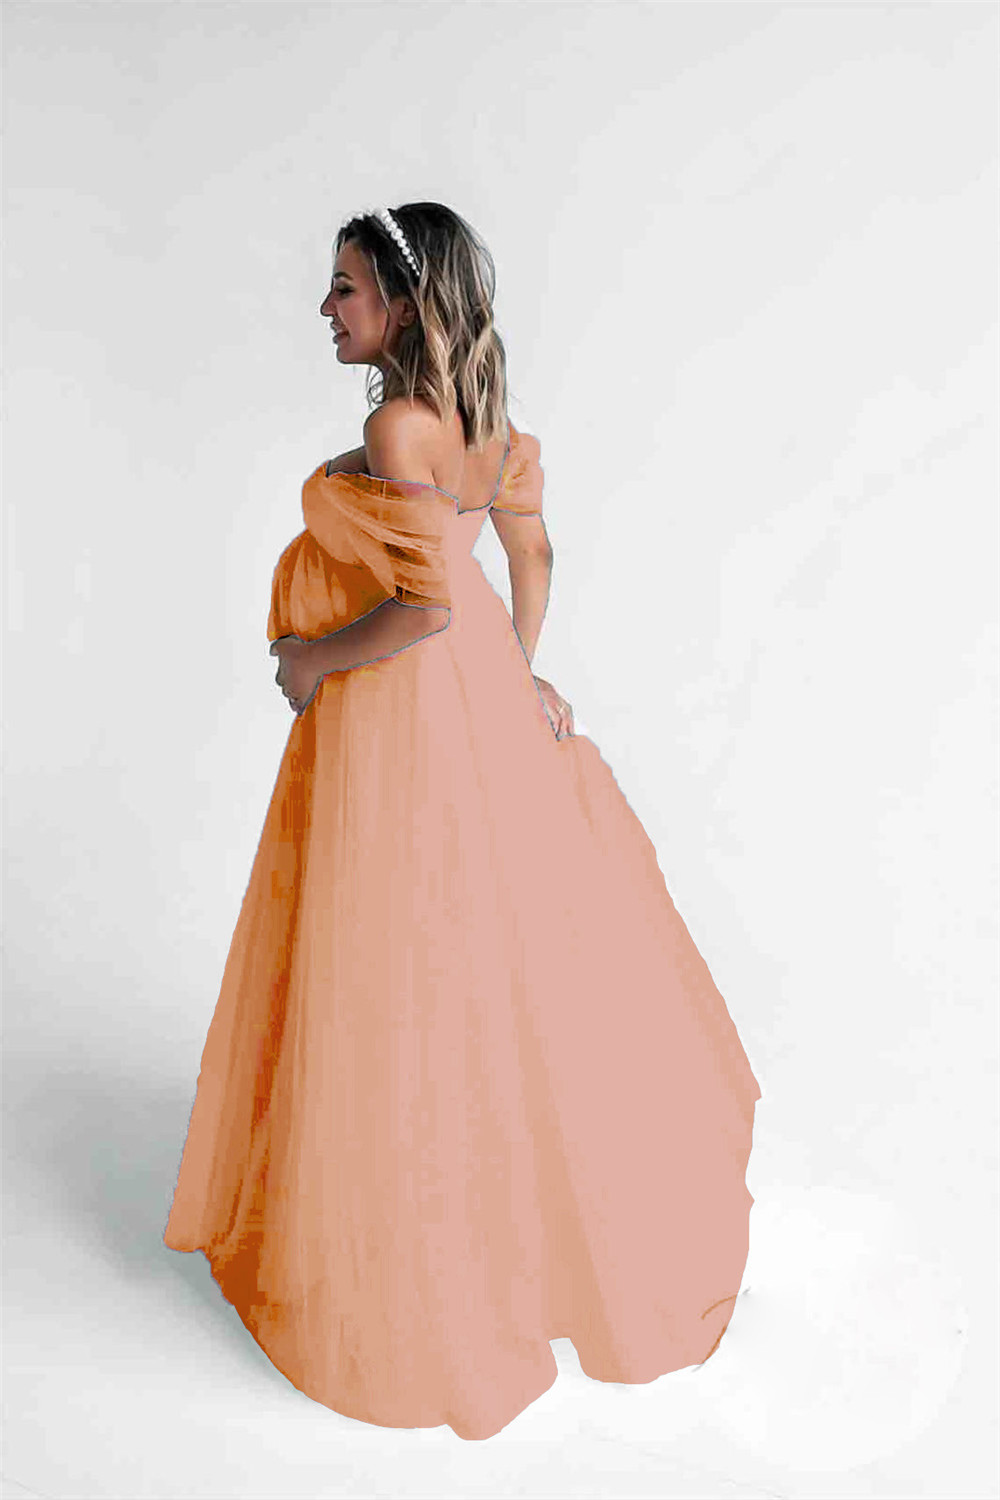 Shoulderless Sexy Maternity Dress Photo Shoot Long Pregnancy Dresses Photography Props Lace Chiffon Maxi Gown For Pregnant Women (9)